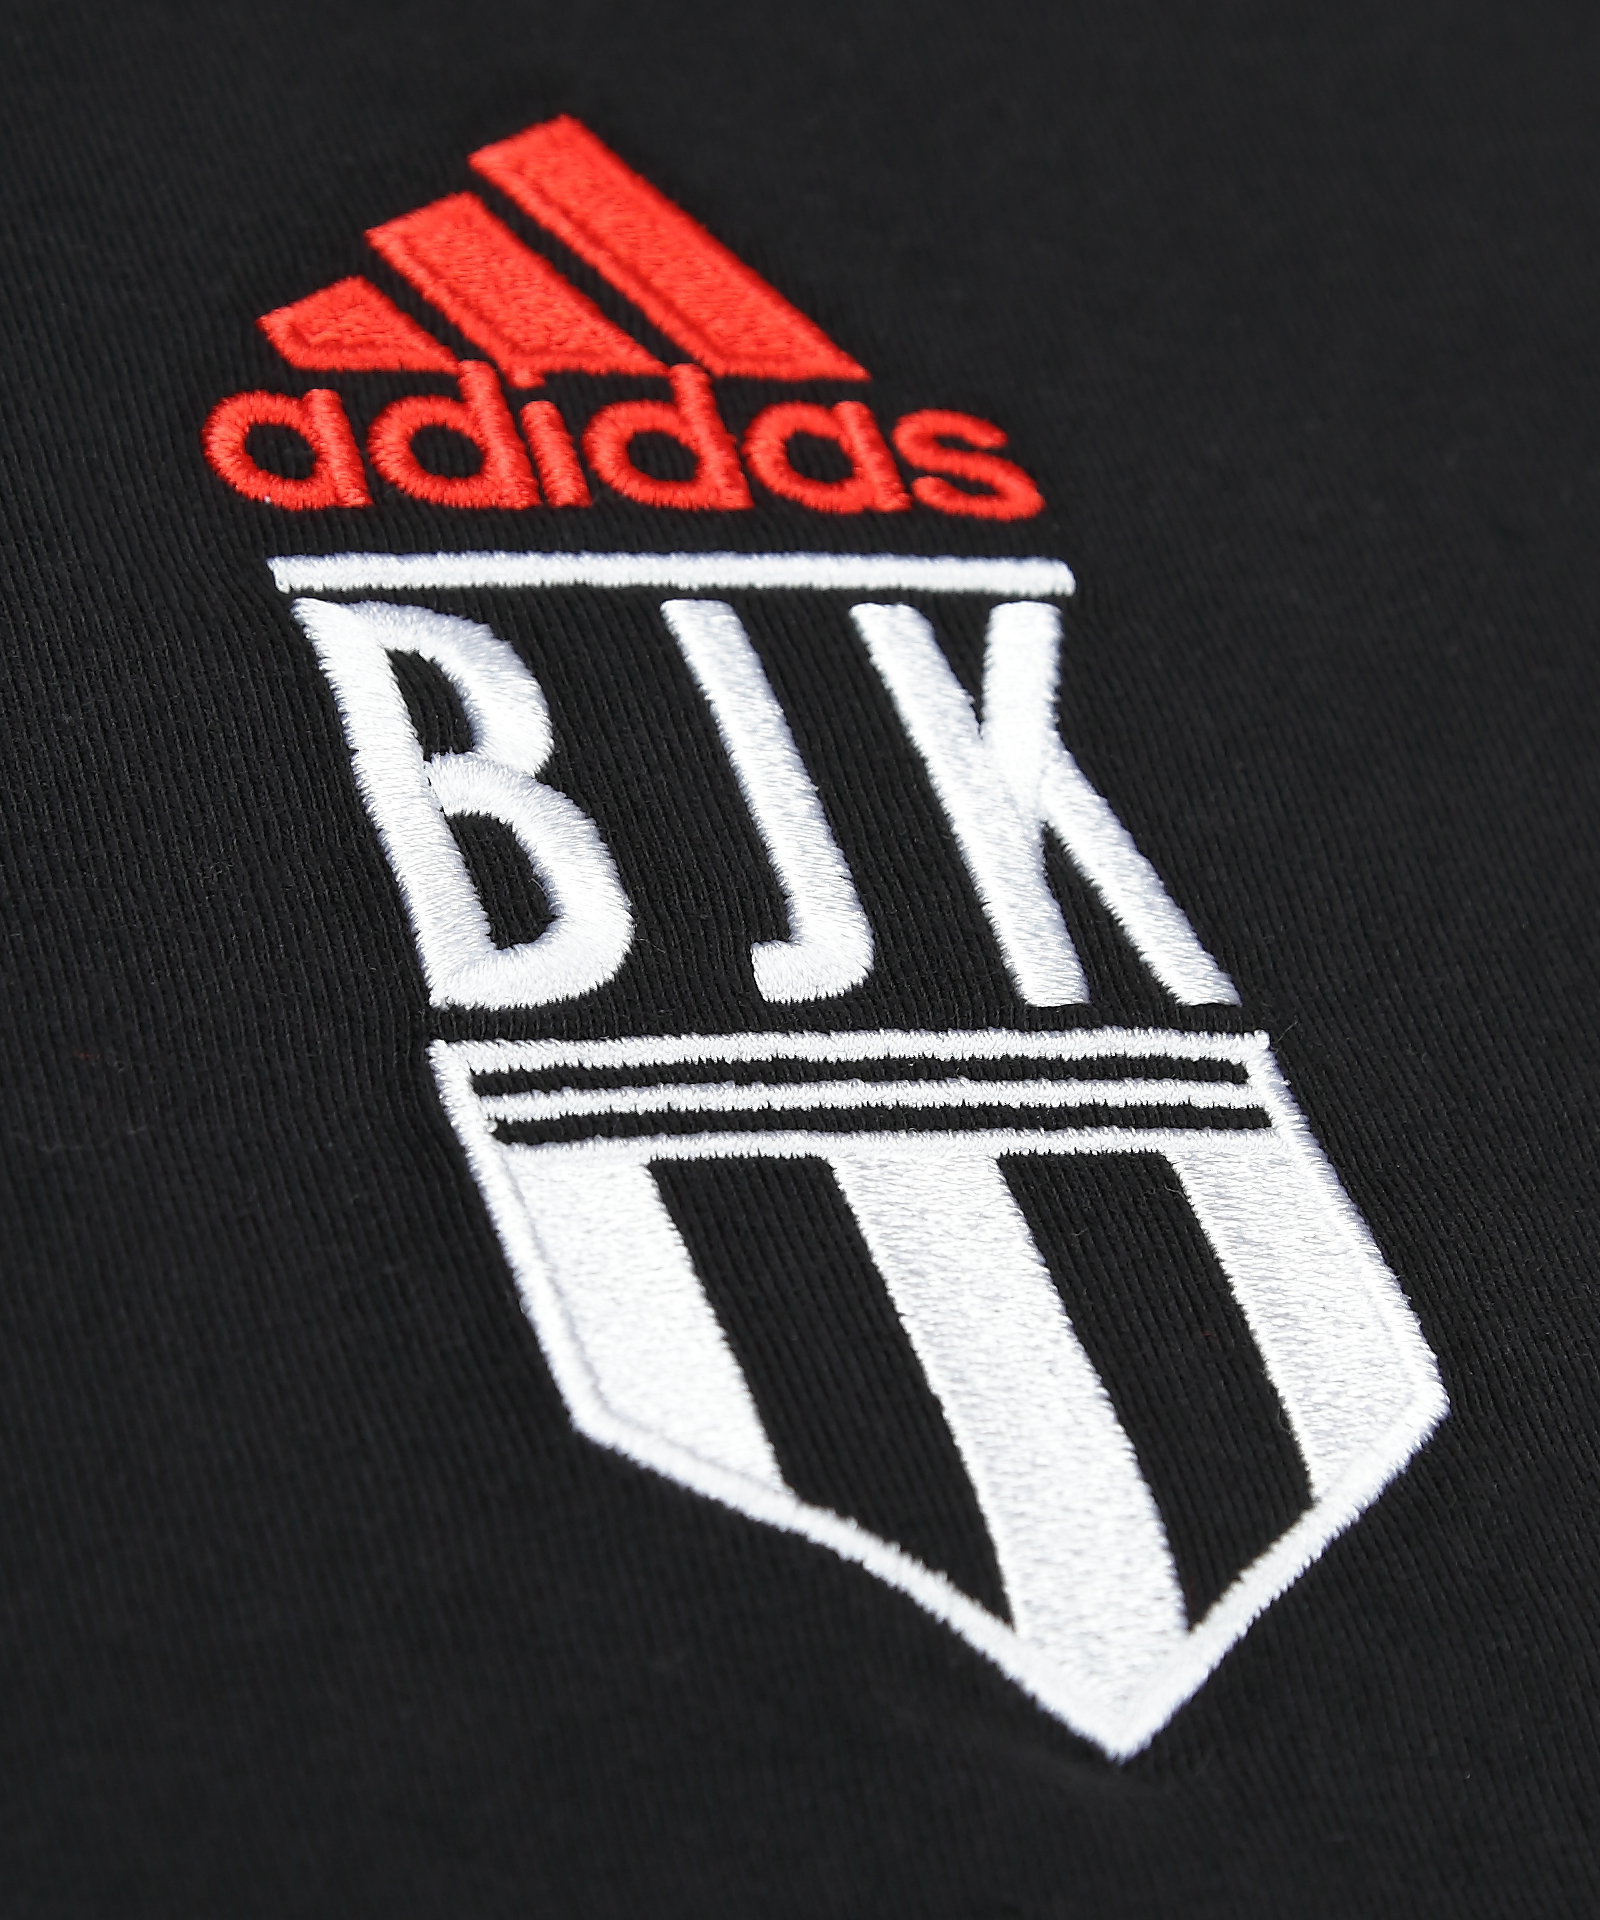 BJK X ADIDAS CULTURE COLLECTION T-SHIRT 20-21 GH6658